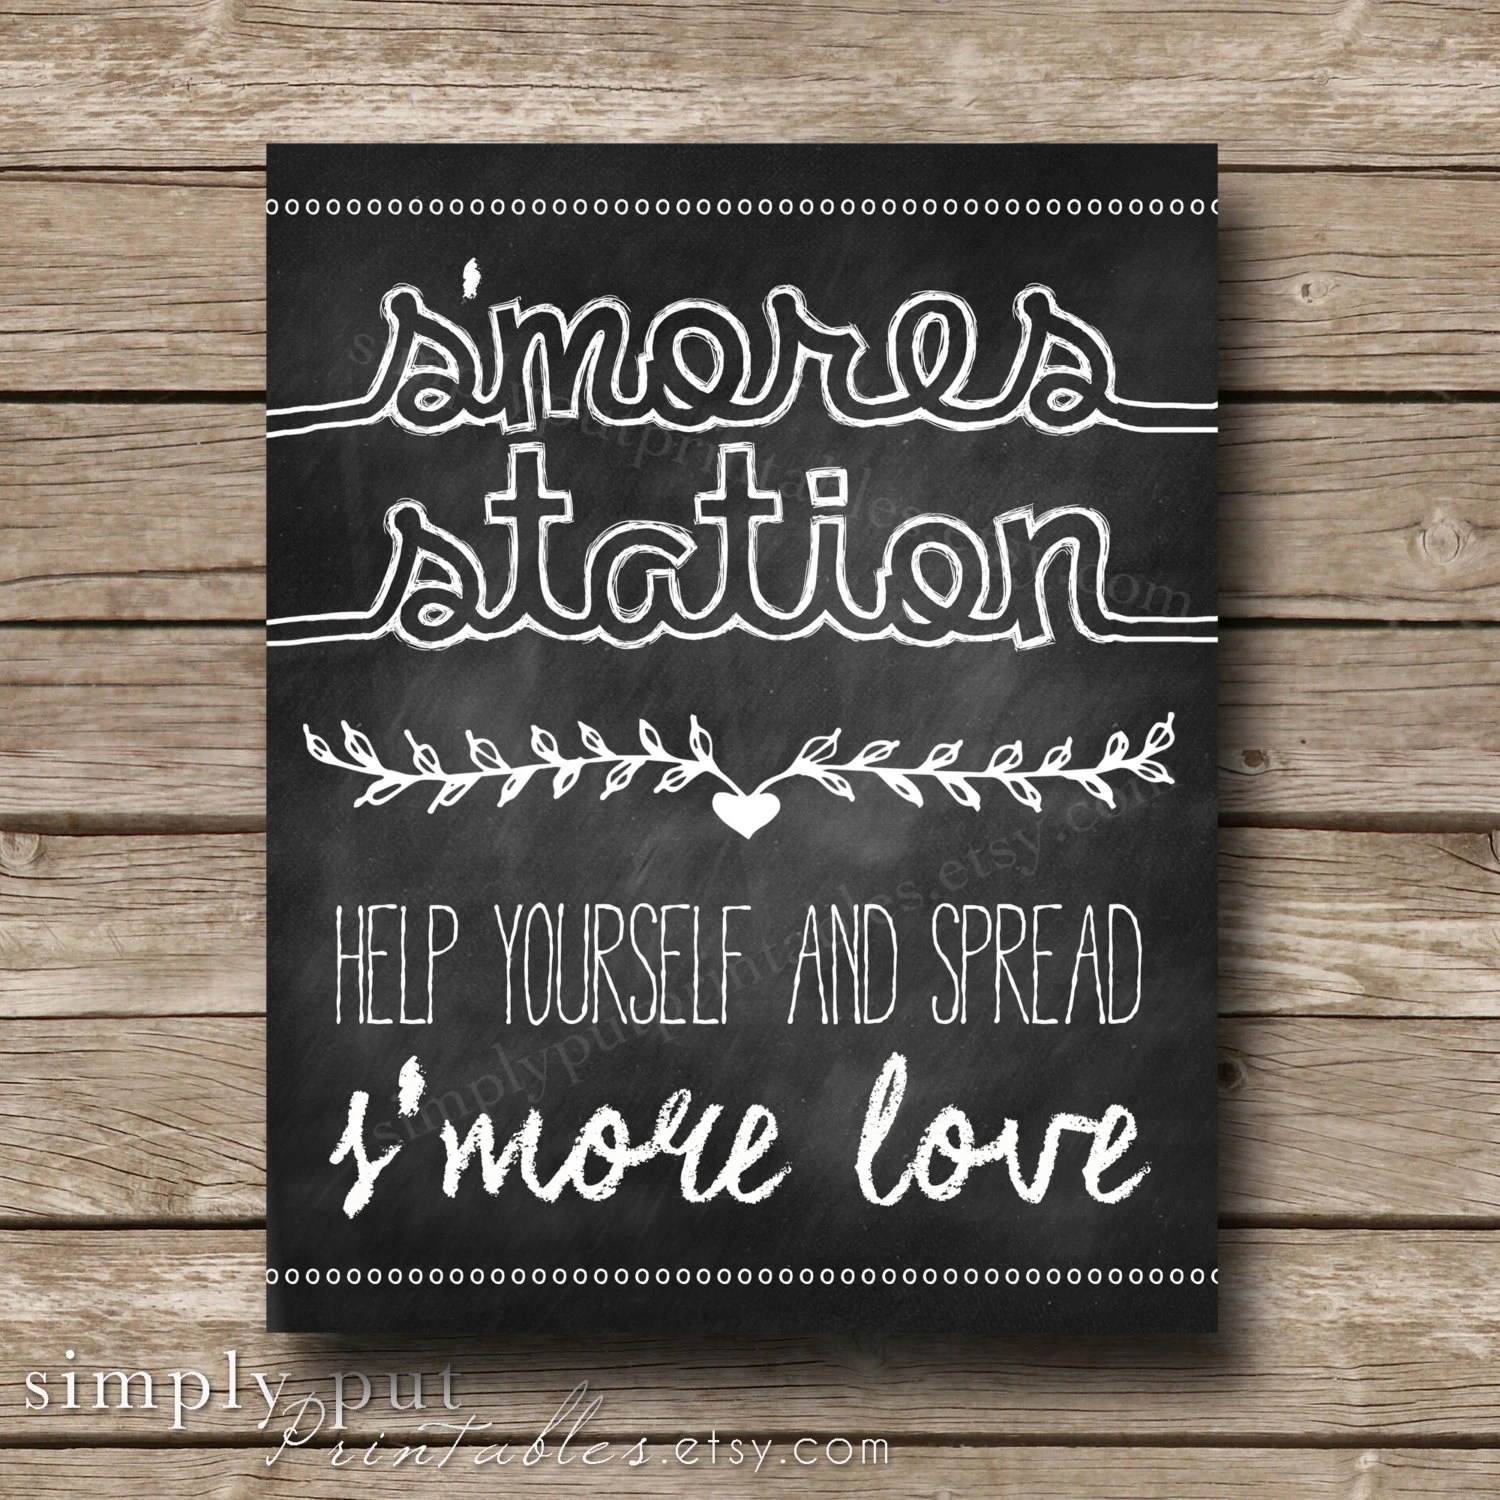 91 Free S Mores Printable Sign